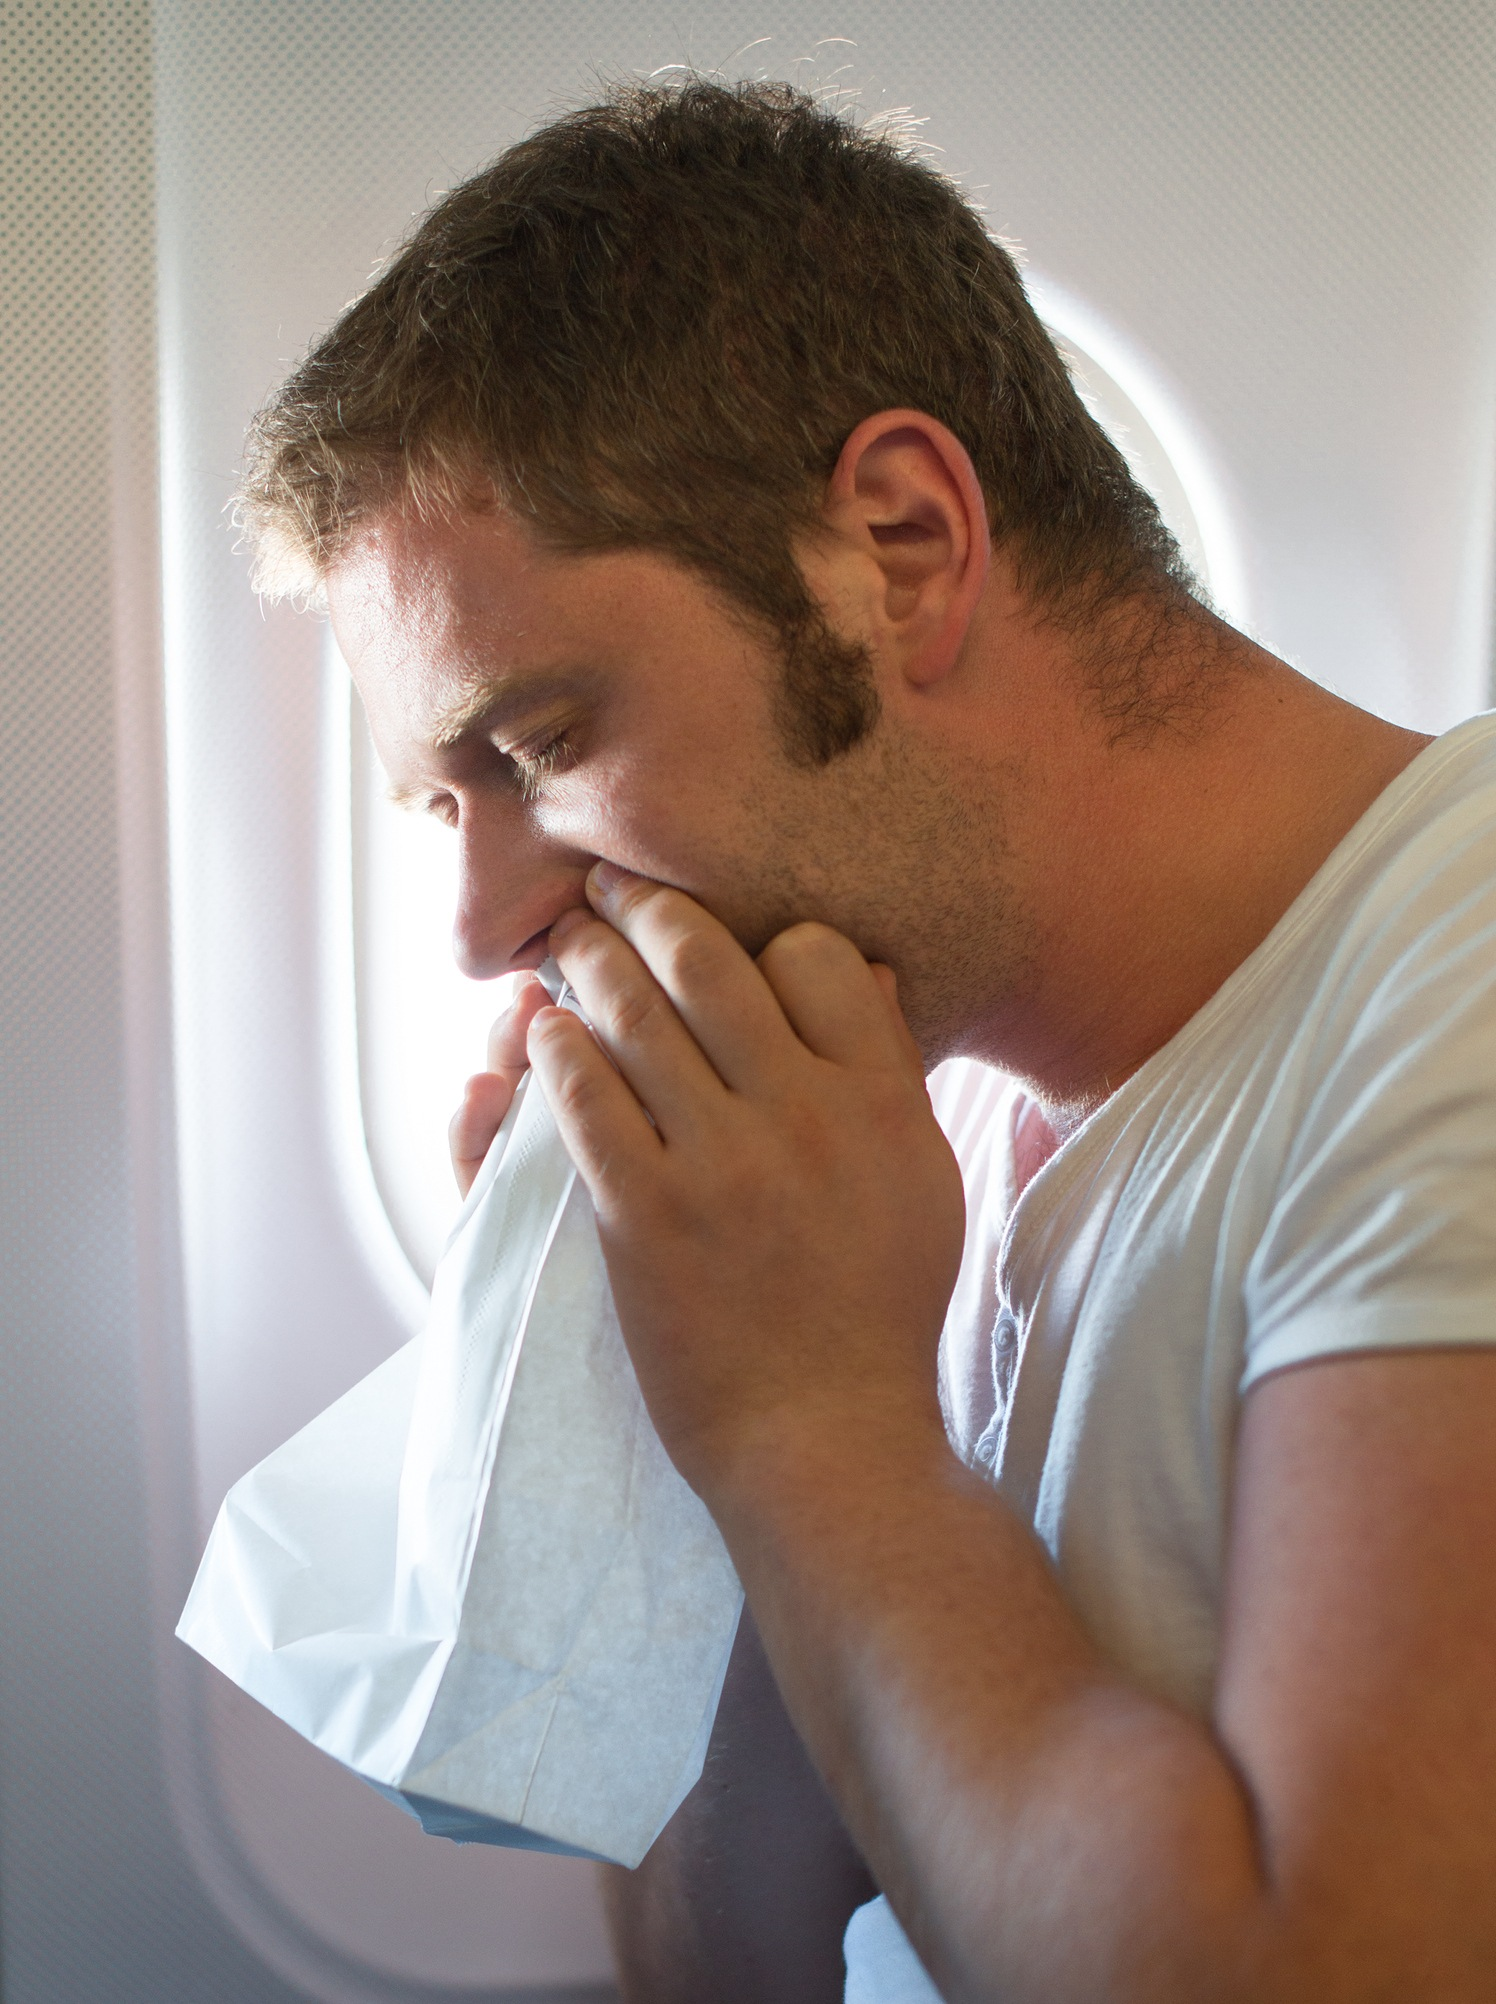 Man throwing up on an airplane